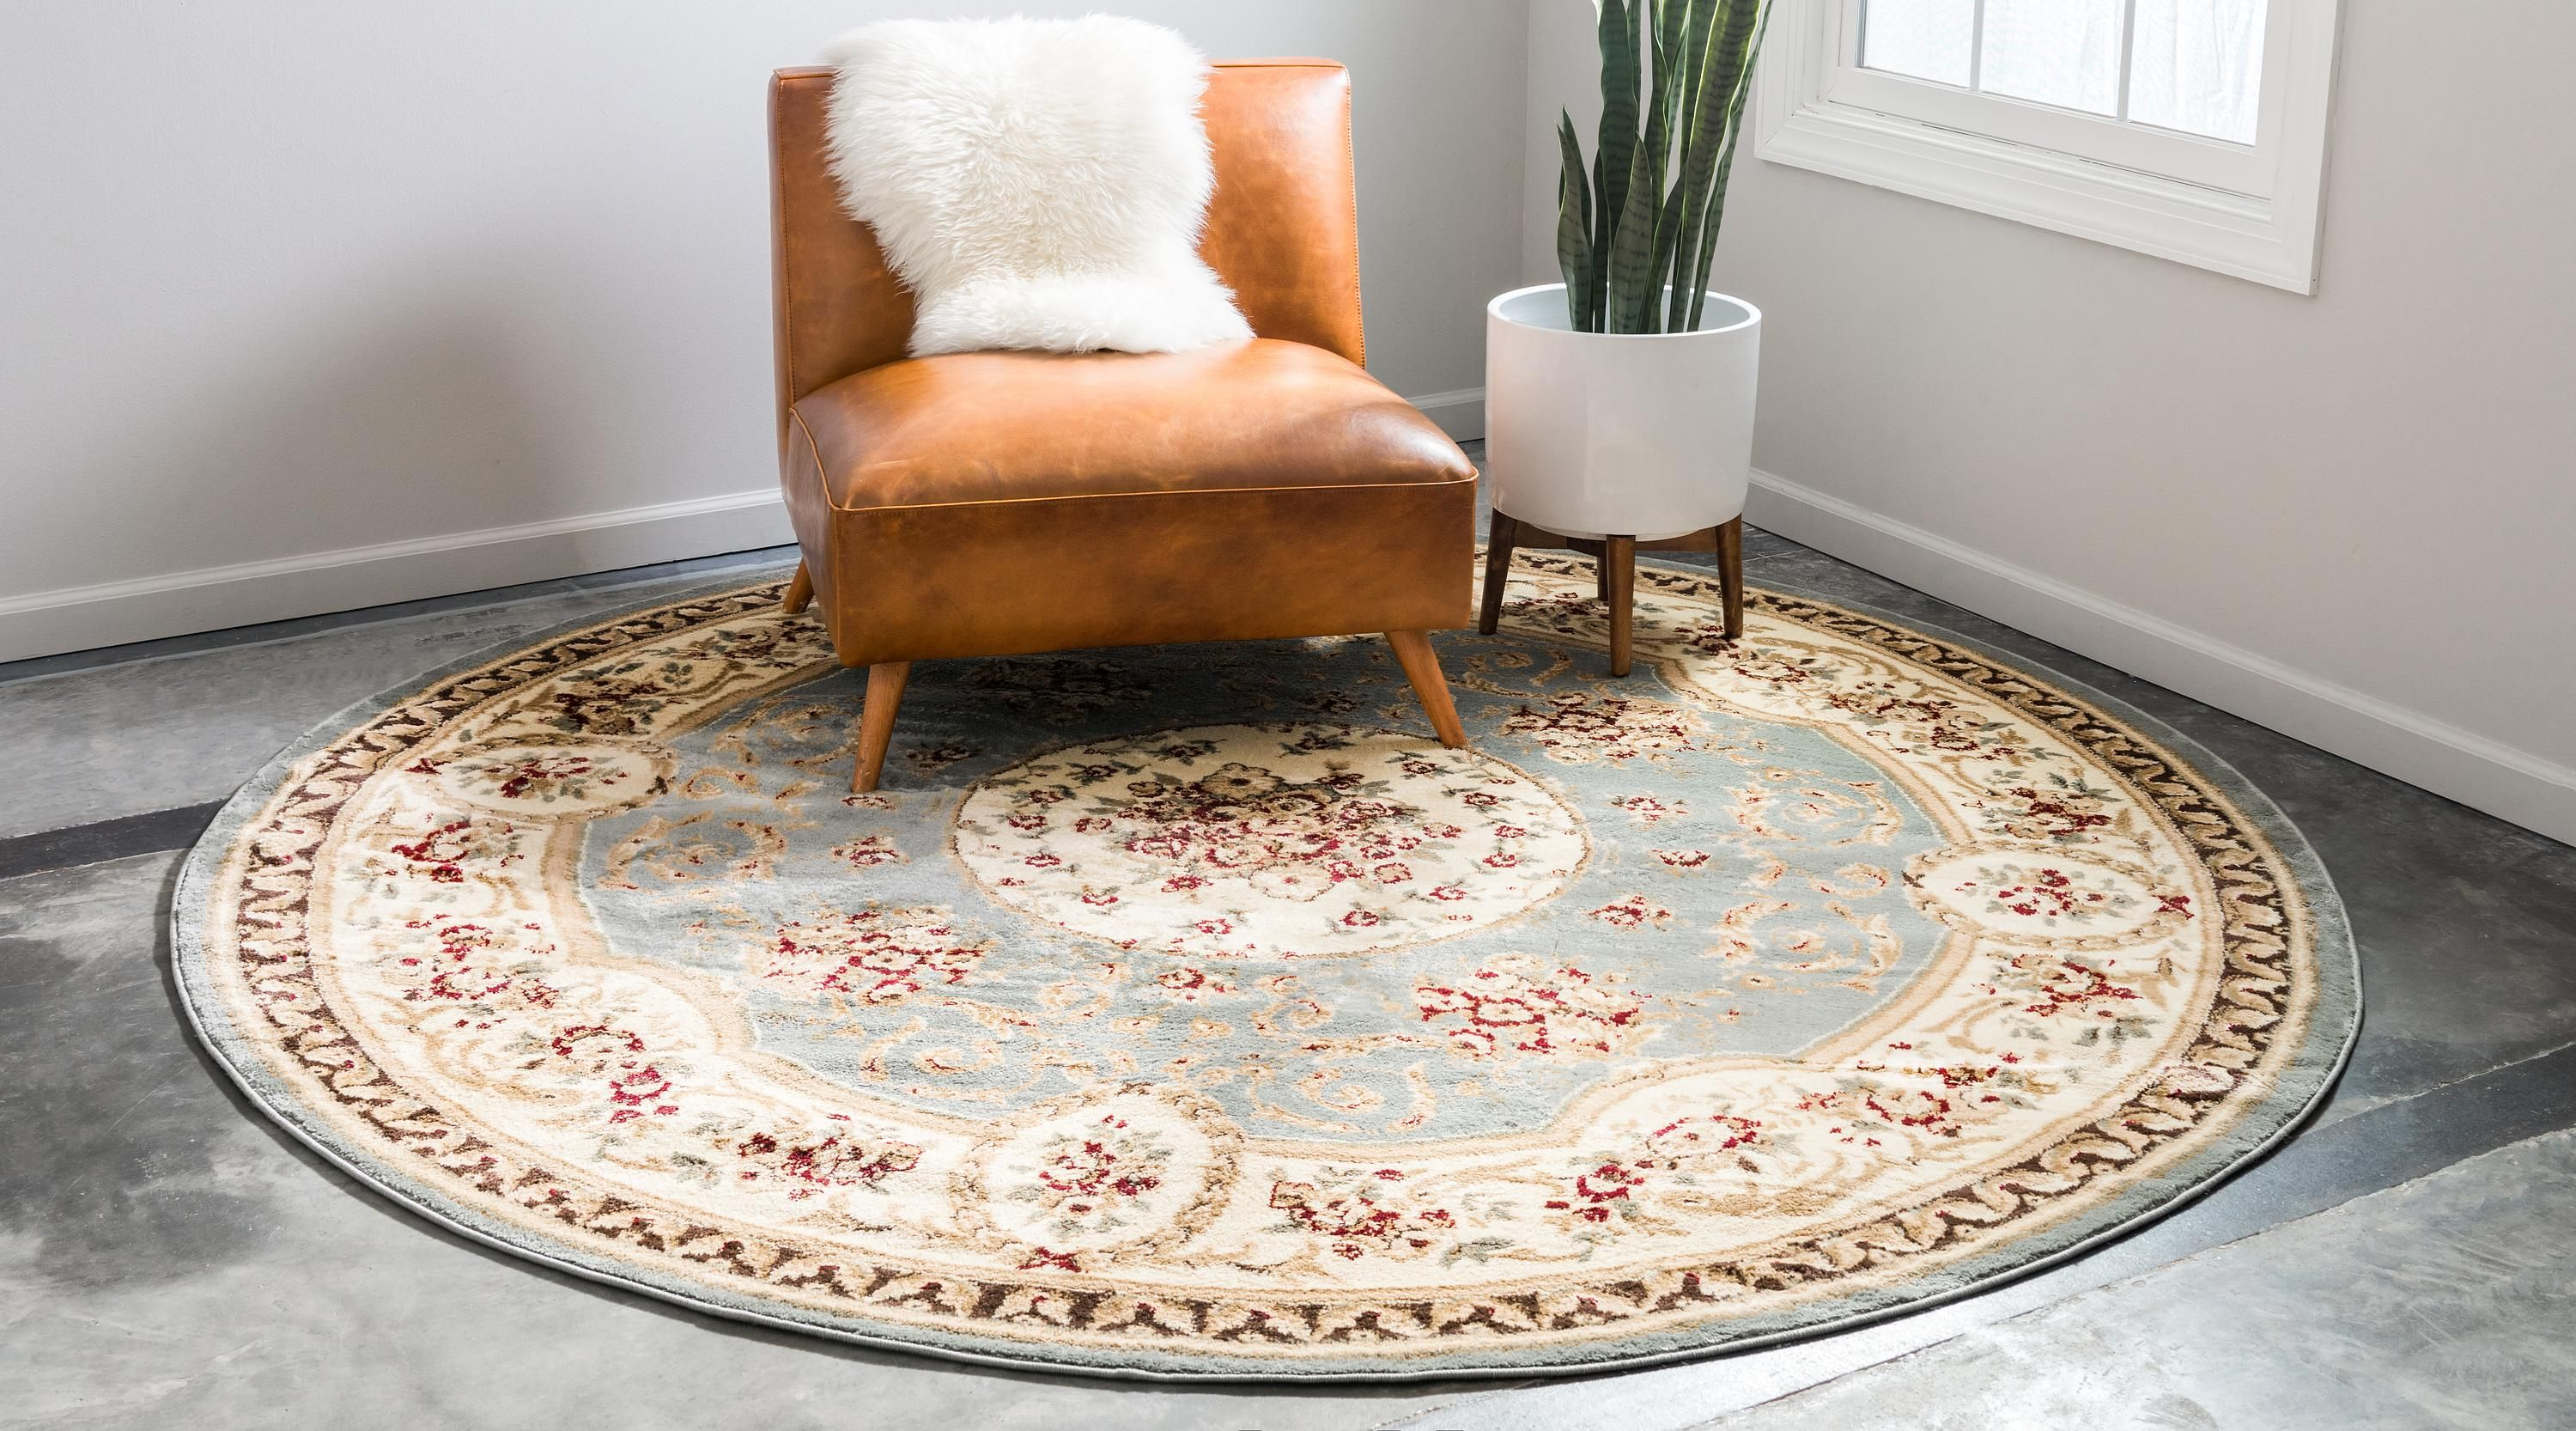 Light Blue 8 X 8 Classic Aubusson Round Rug Ad Blue Light Classic Rug Aubusson Sponsored Round Rugs Rugs Vintage House